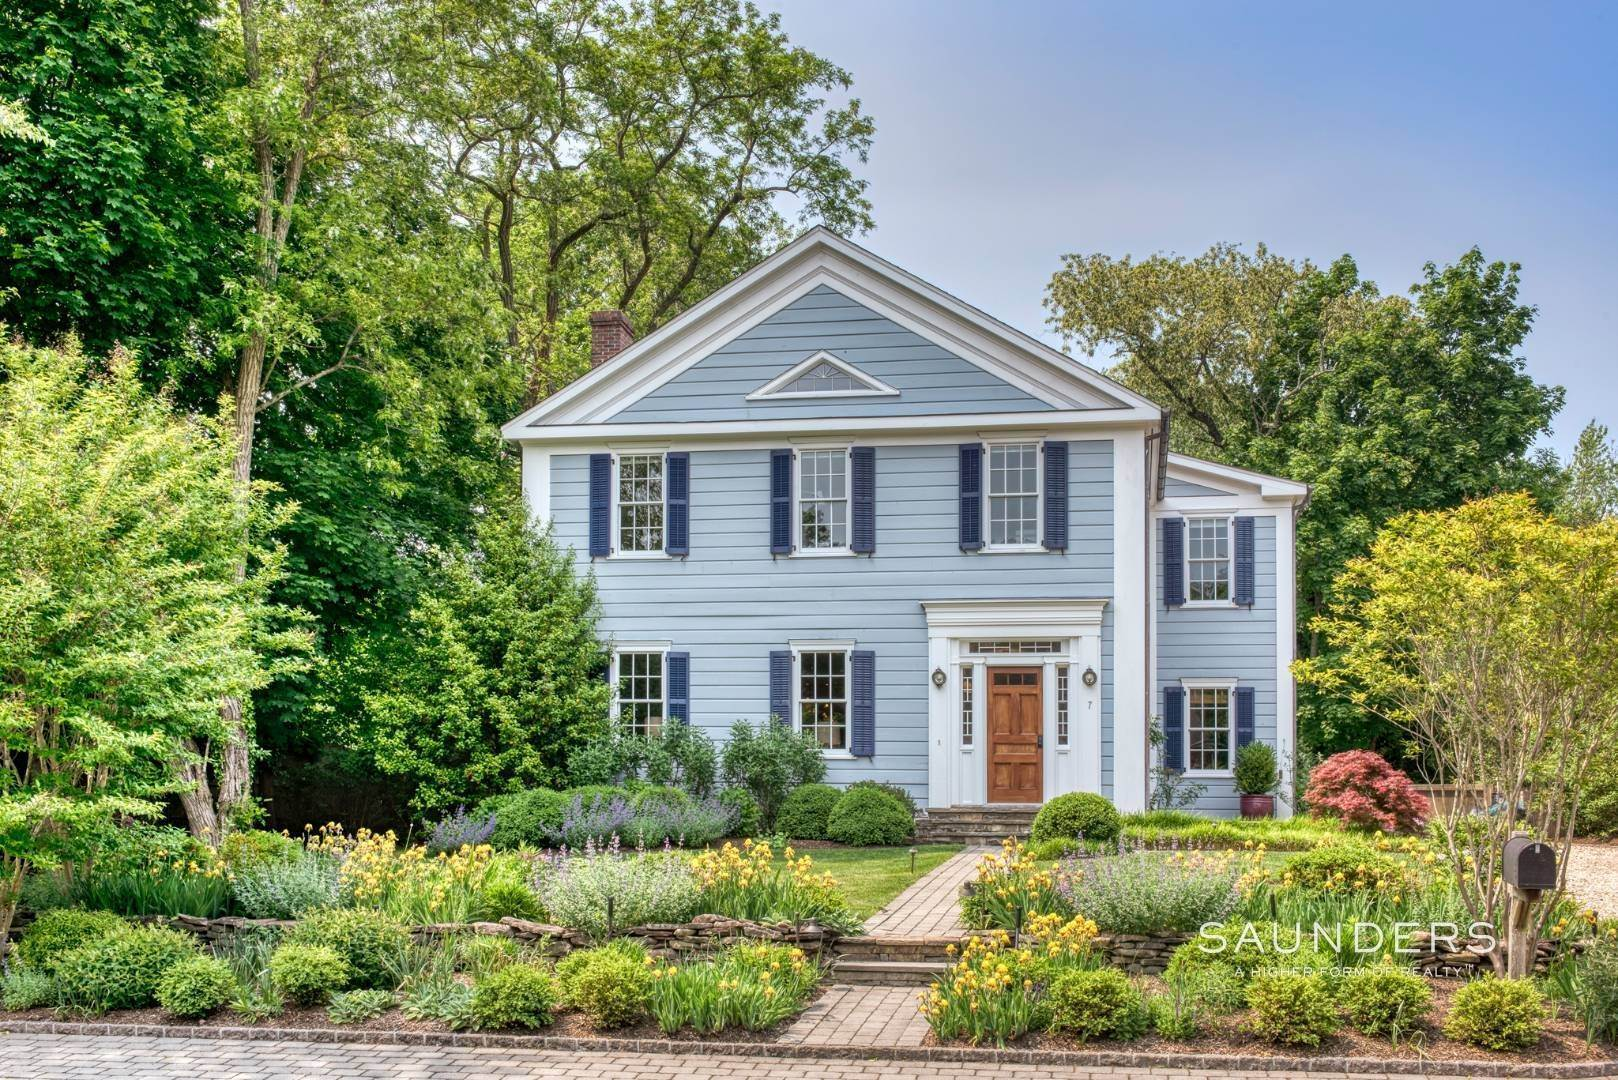 Single Family Homes at Sag Harbor Village Sag Harbor, Southampton Town, NY 11963